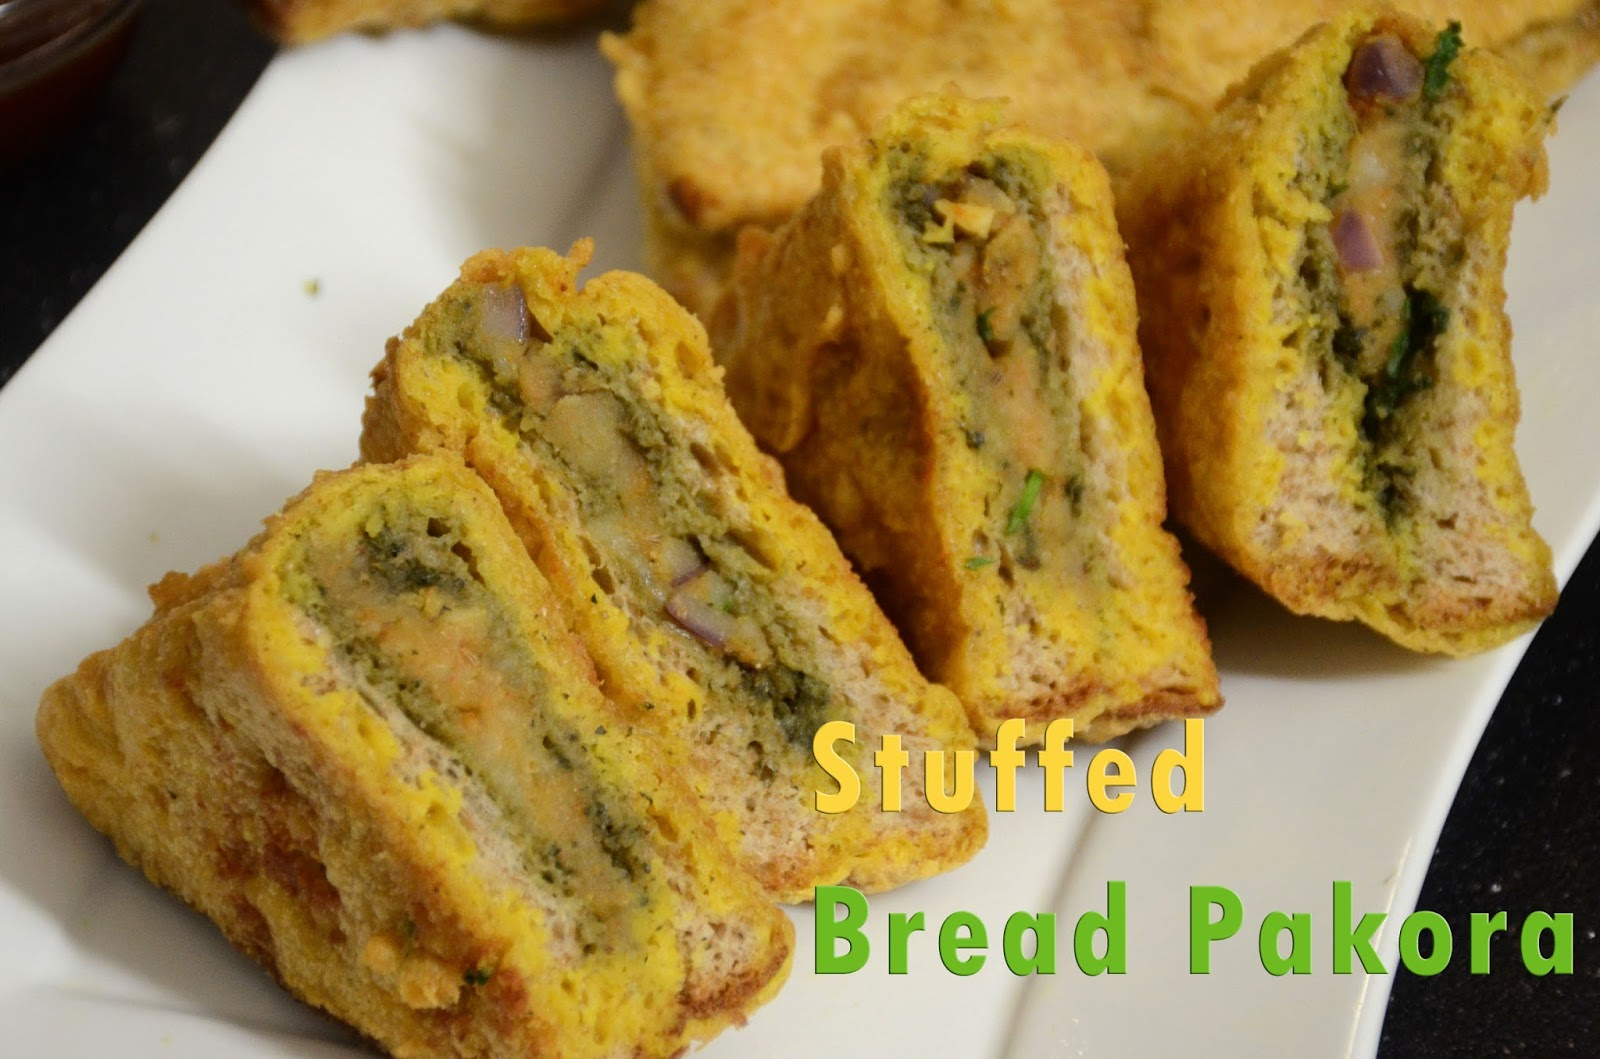 Veggie recipe house stuffed bread pakora quick indian snack recipe stuffed bread pakora bread pakora popular indian street food makes a perfect evening snack with a hot cup of tea in rainy days we used to enjoy this forumfinder Images